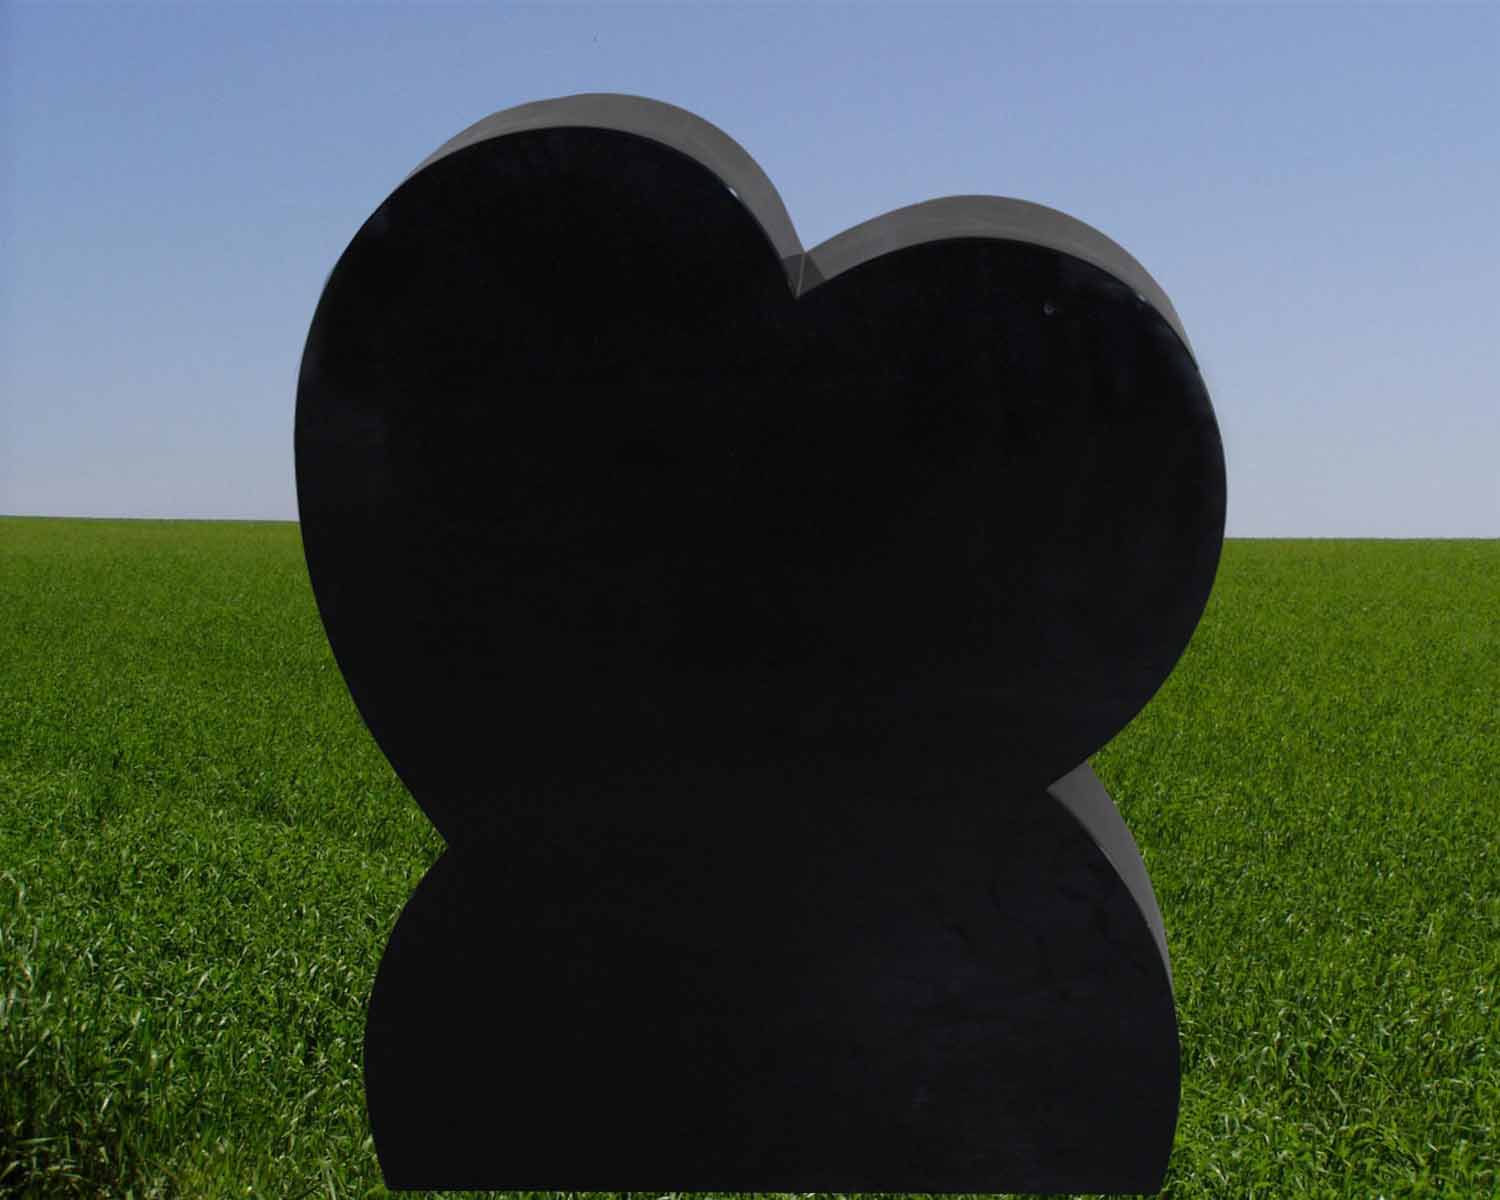 EG-13-13-383-6 / Jet Black / Tilted Heart w/ Curved Bottom